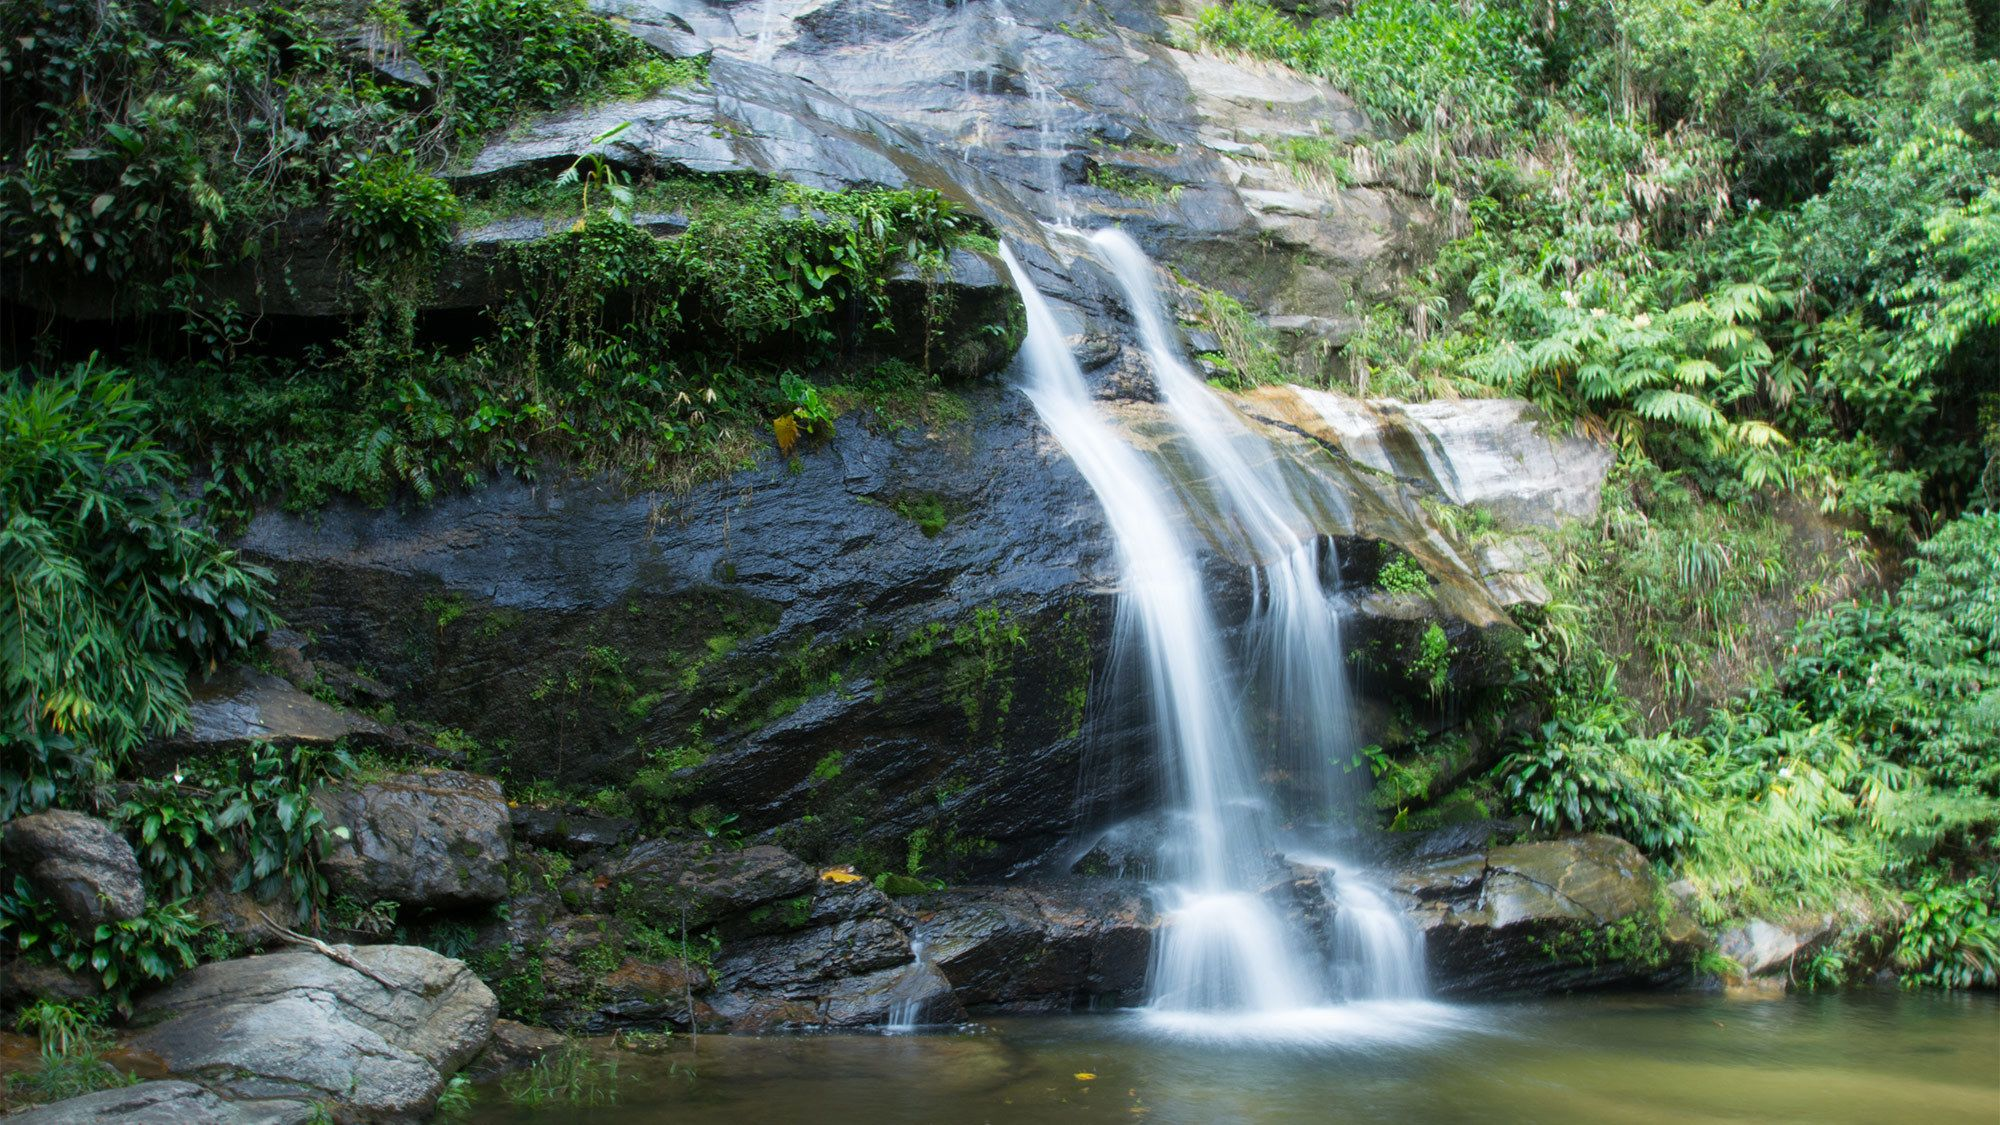 Waterfalls at the Tijuca Forest in Brazil